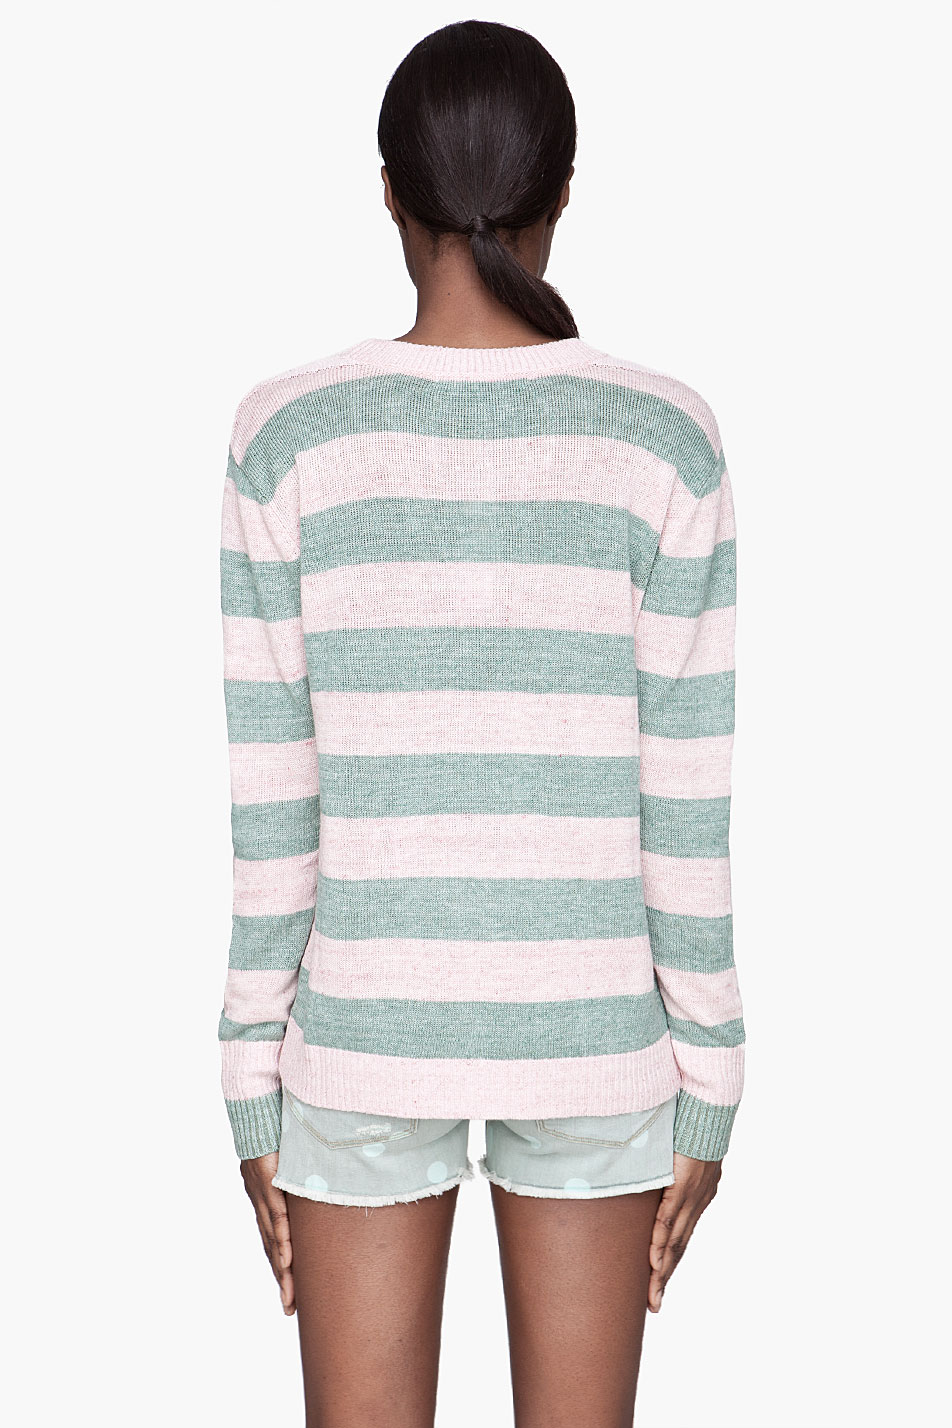 marc by marc jacobs sweater winnie stripe in green lyst. Black Bedroom Furniture Sets. Home Design Ideas